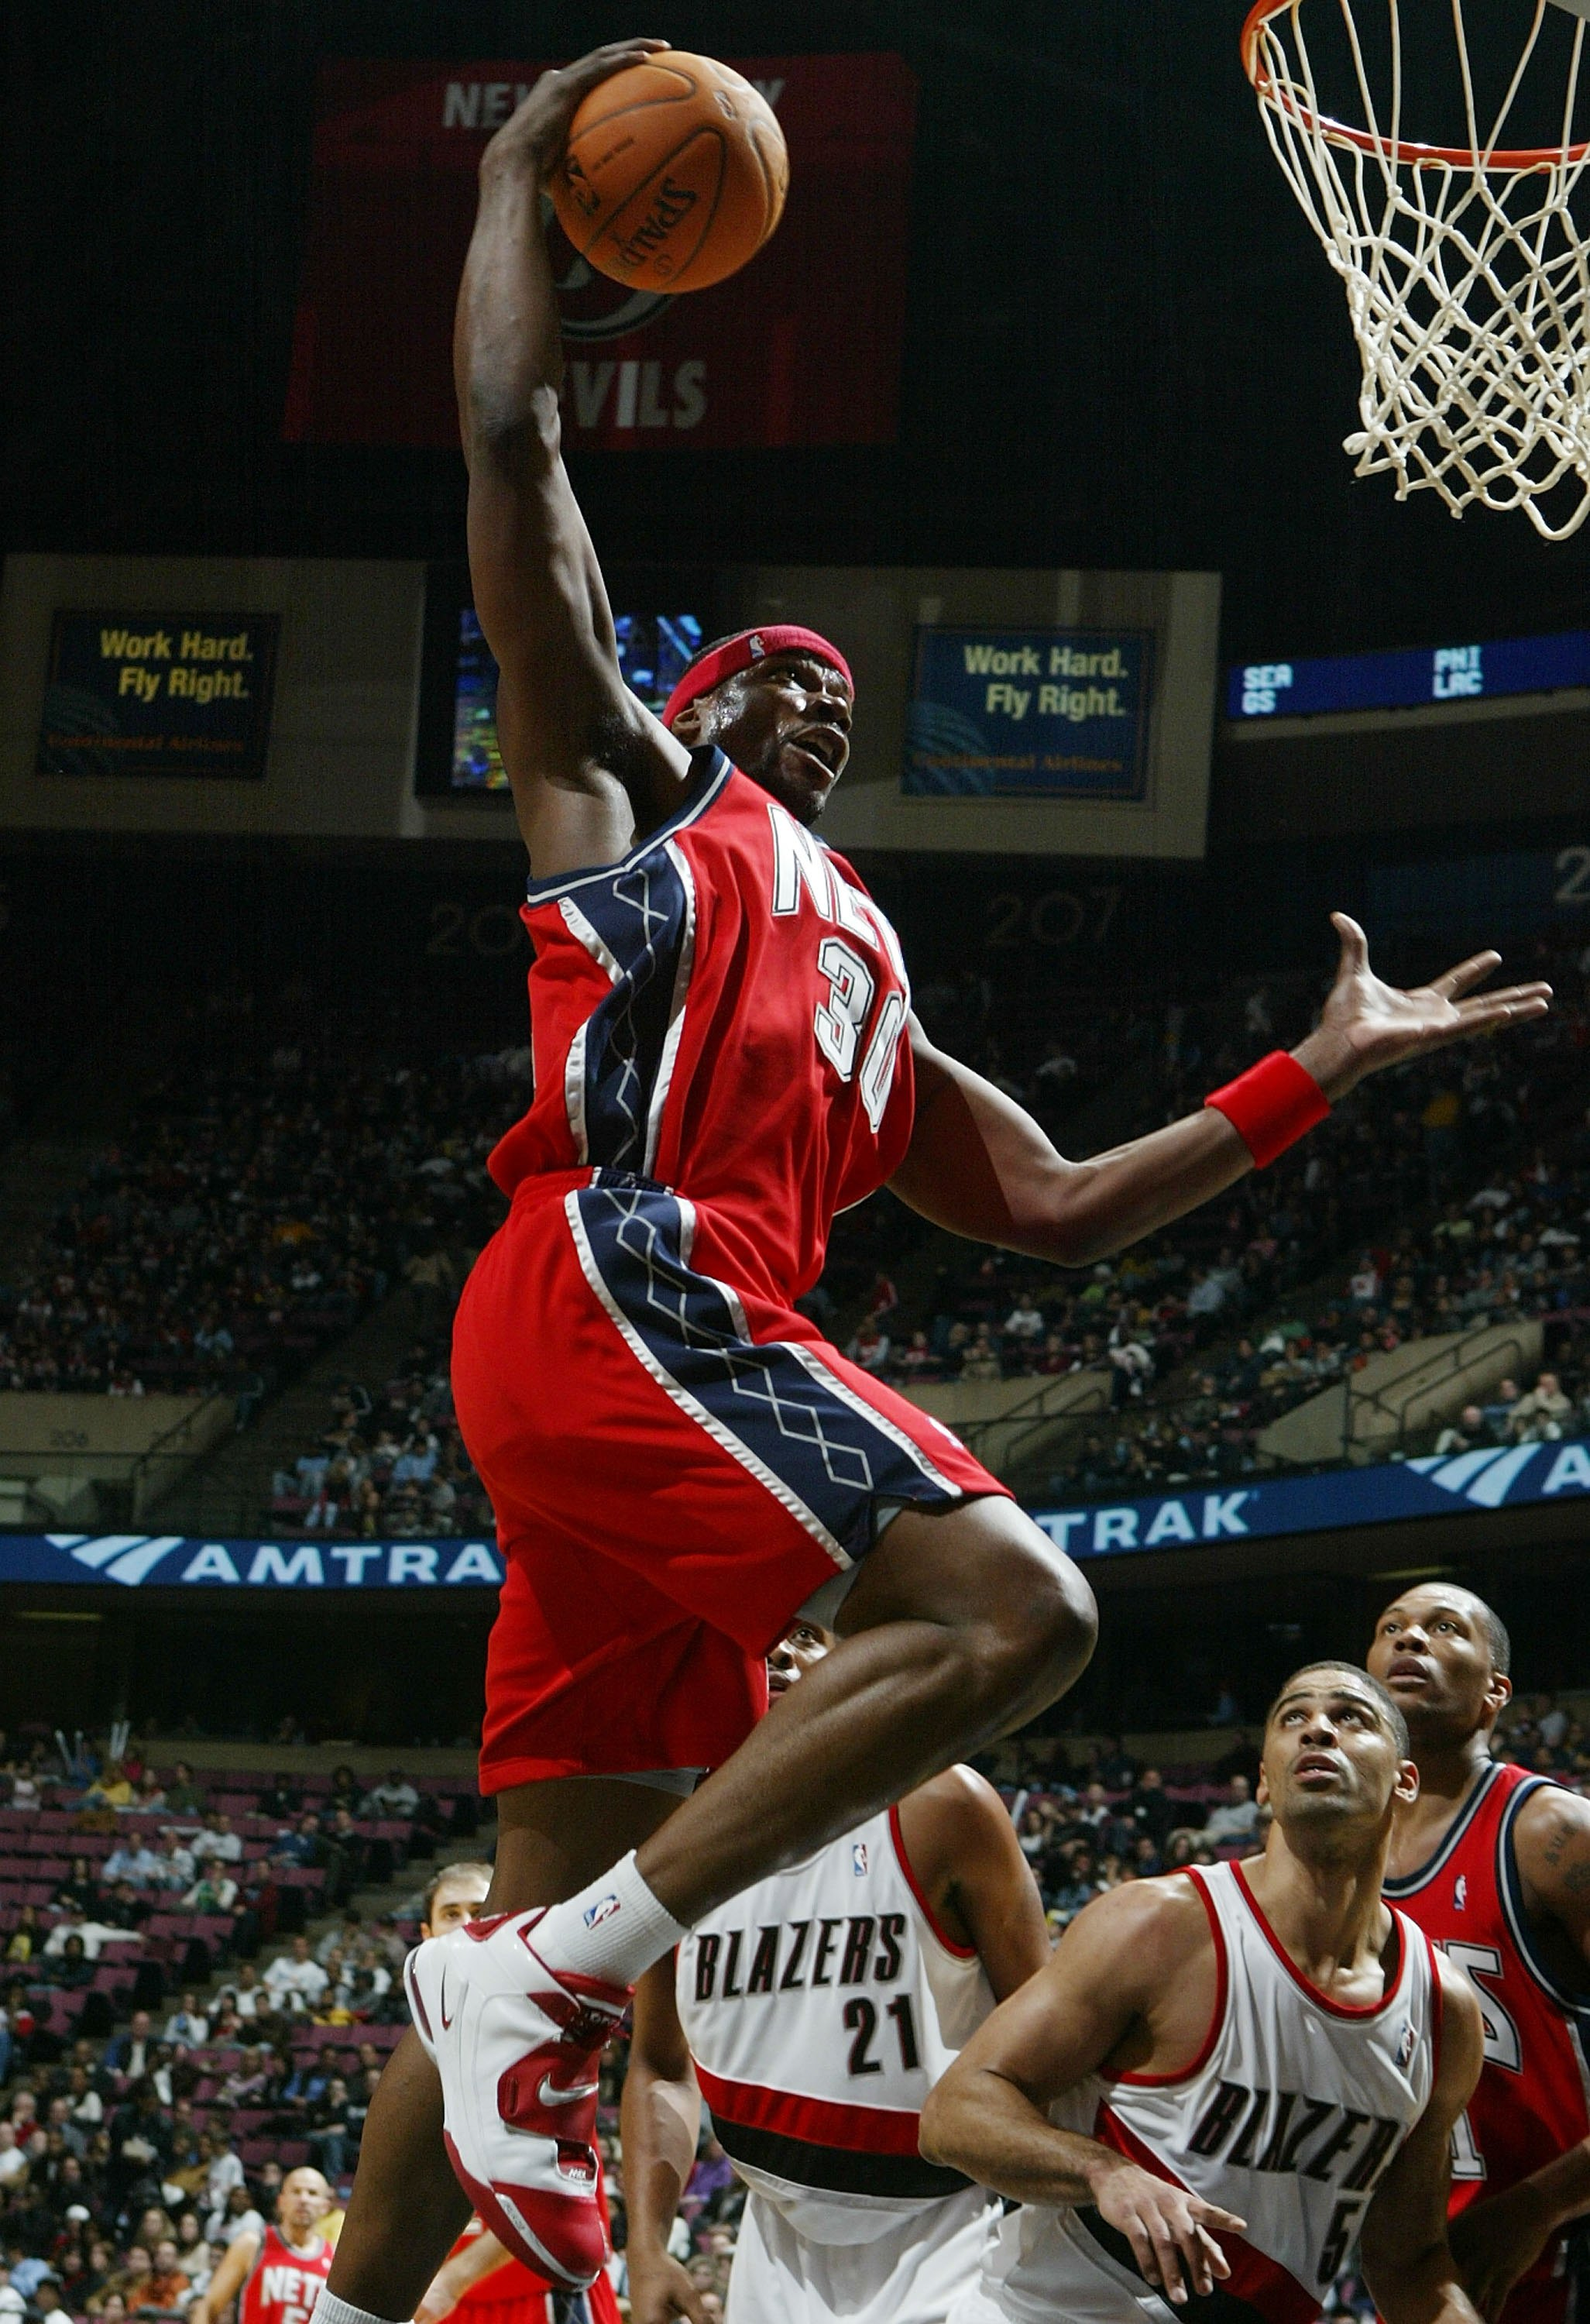 EAST RUTHERFORD, NJ - NOVEMBER 18: Clifford Robinson #30 of the New Jersey Nets grabs a rebound against the Portland Trail Blazers during their game on November 18, 2006 at Continental Airlines Arena in East Rutherford, New Jersey. NOTE TO USER: User expr